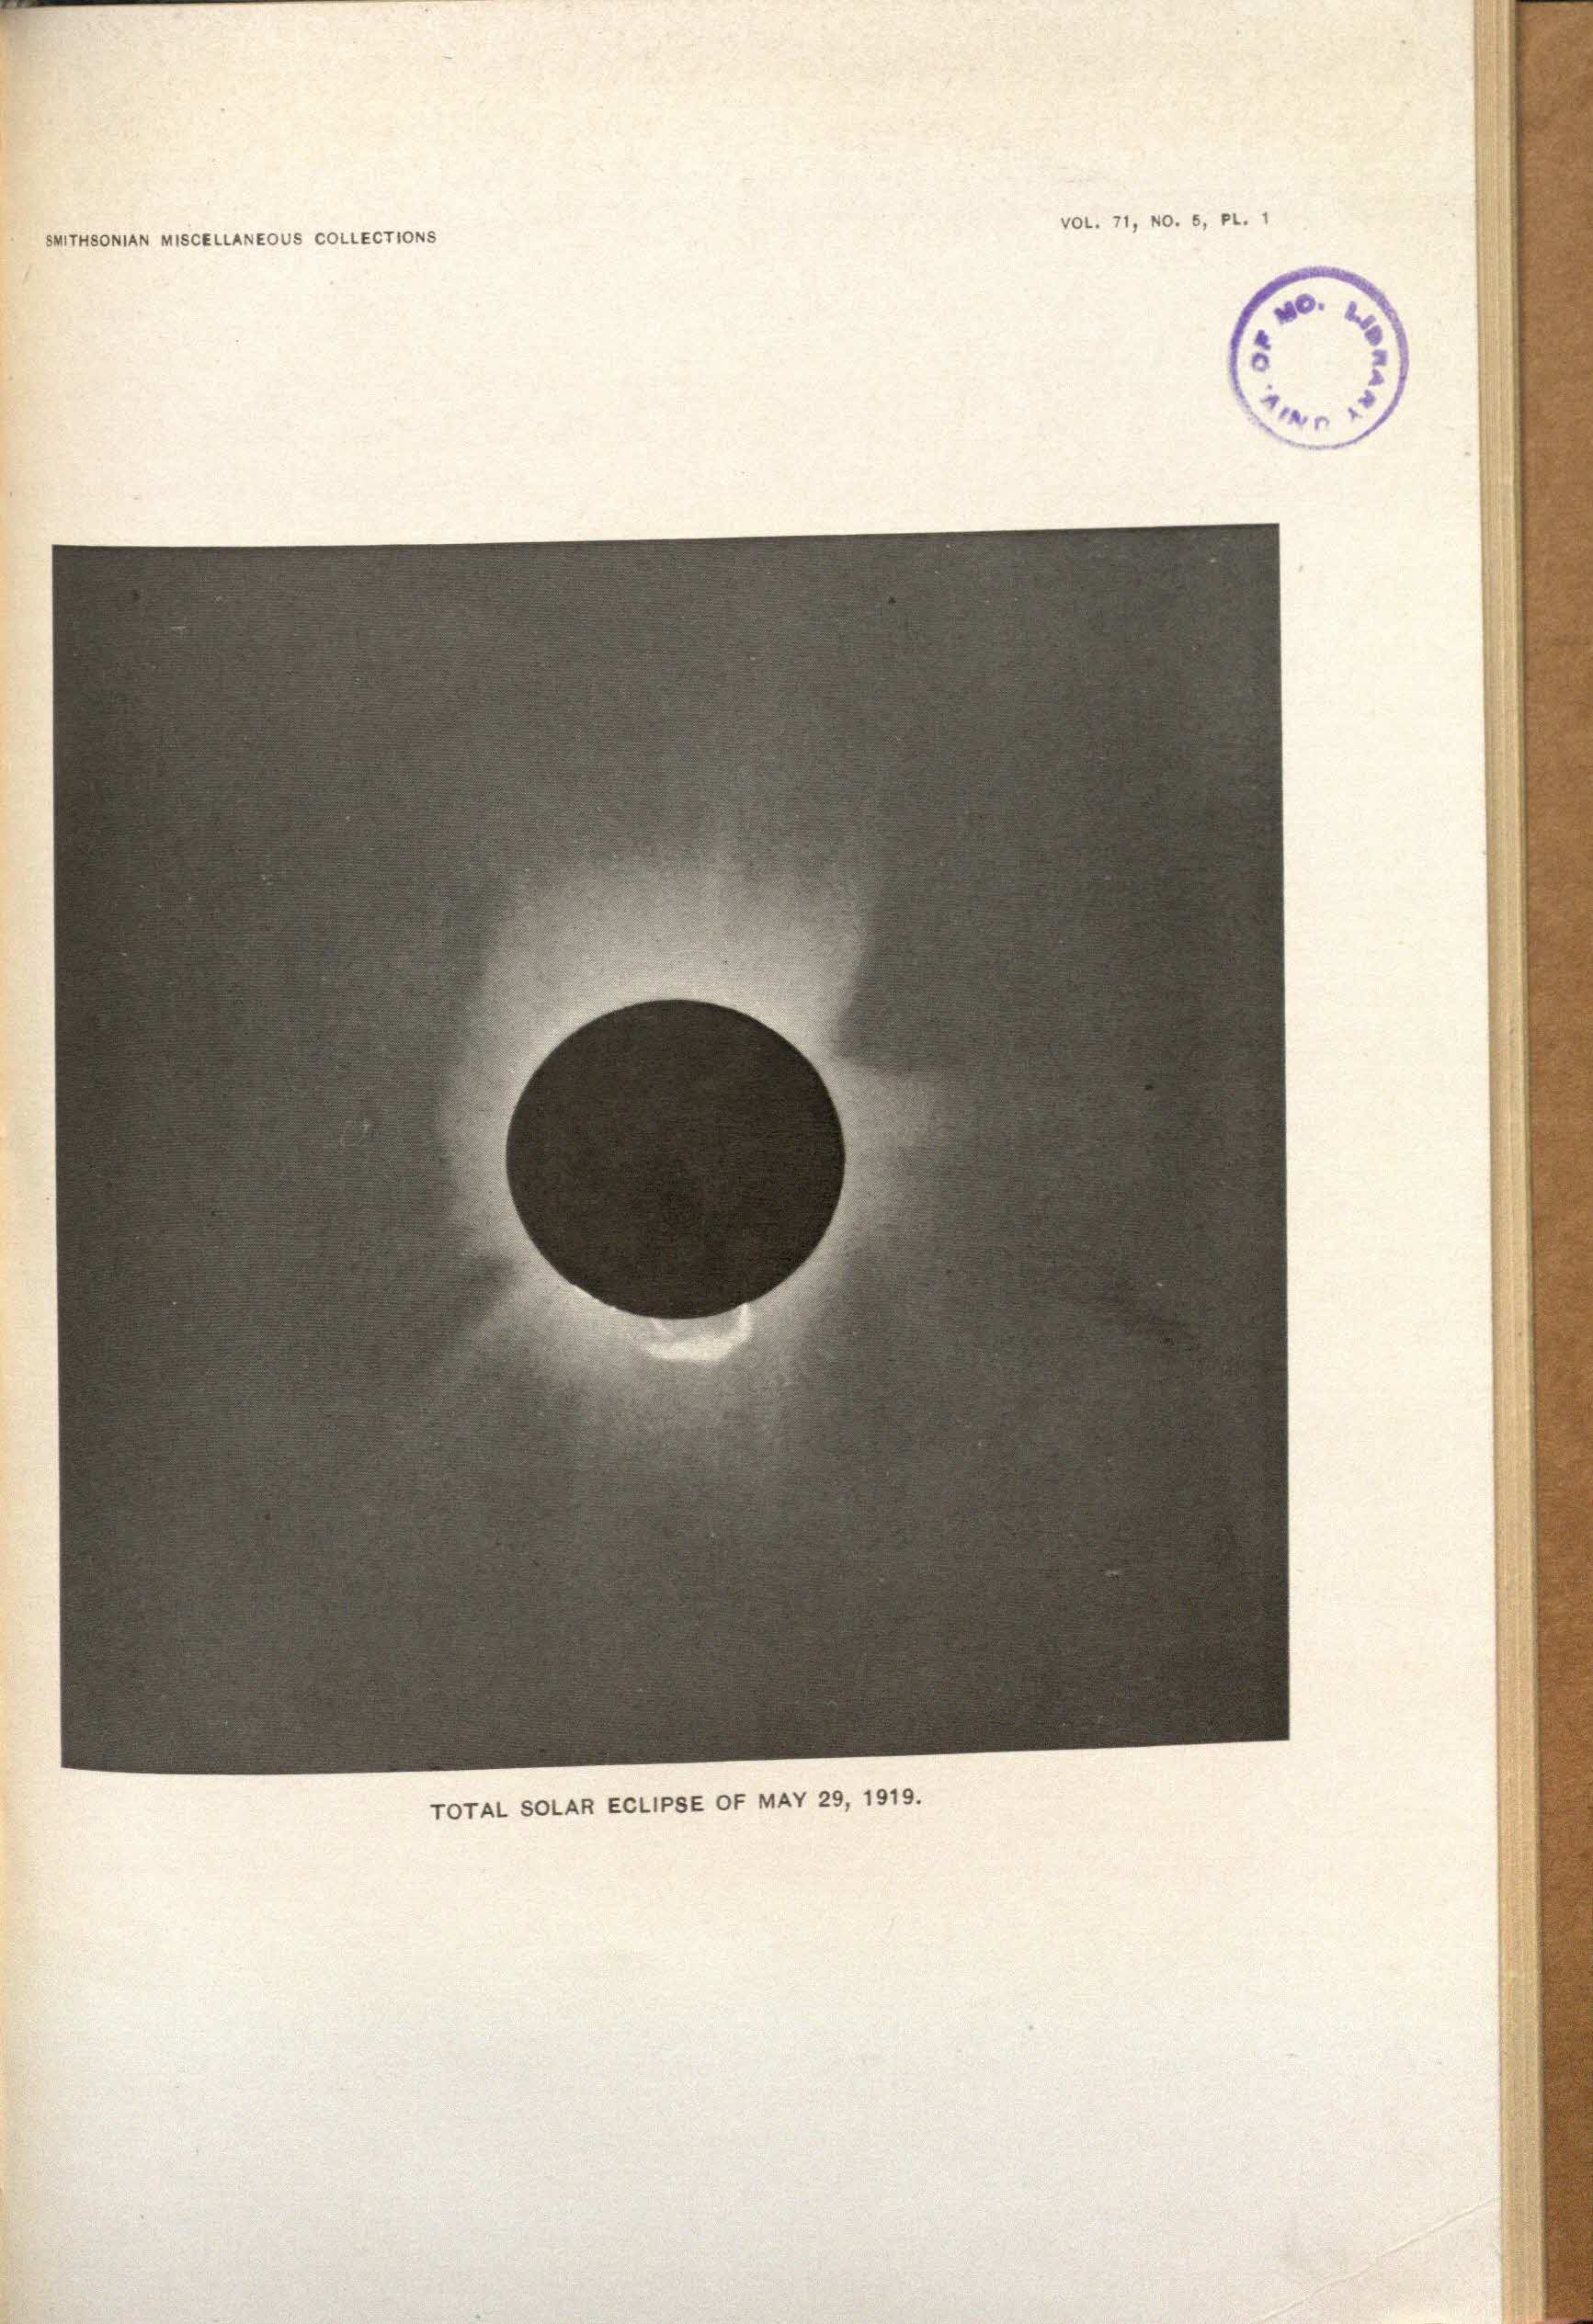 Observations of the total solar eclipse of May 29, 1919 : (with one plate) / by C. G. Abbot and A. F. Moore.